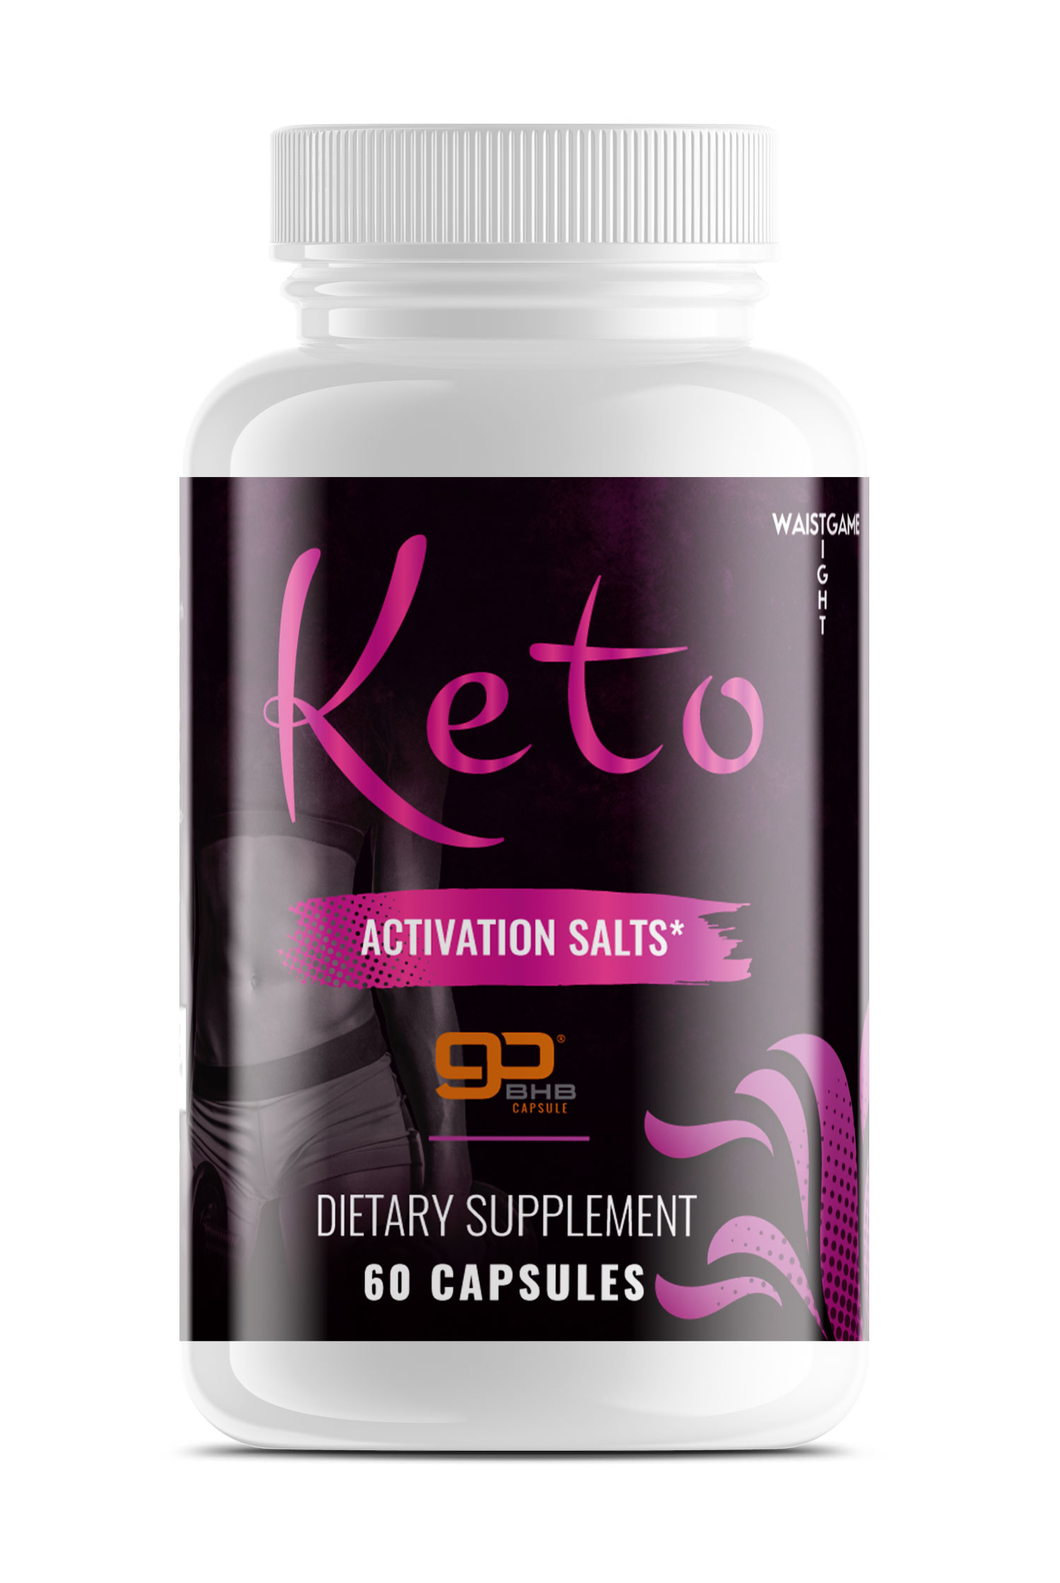 Keto Activation Salts